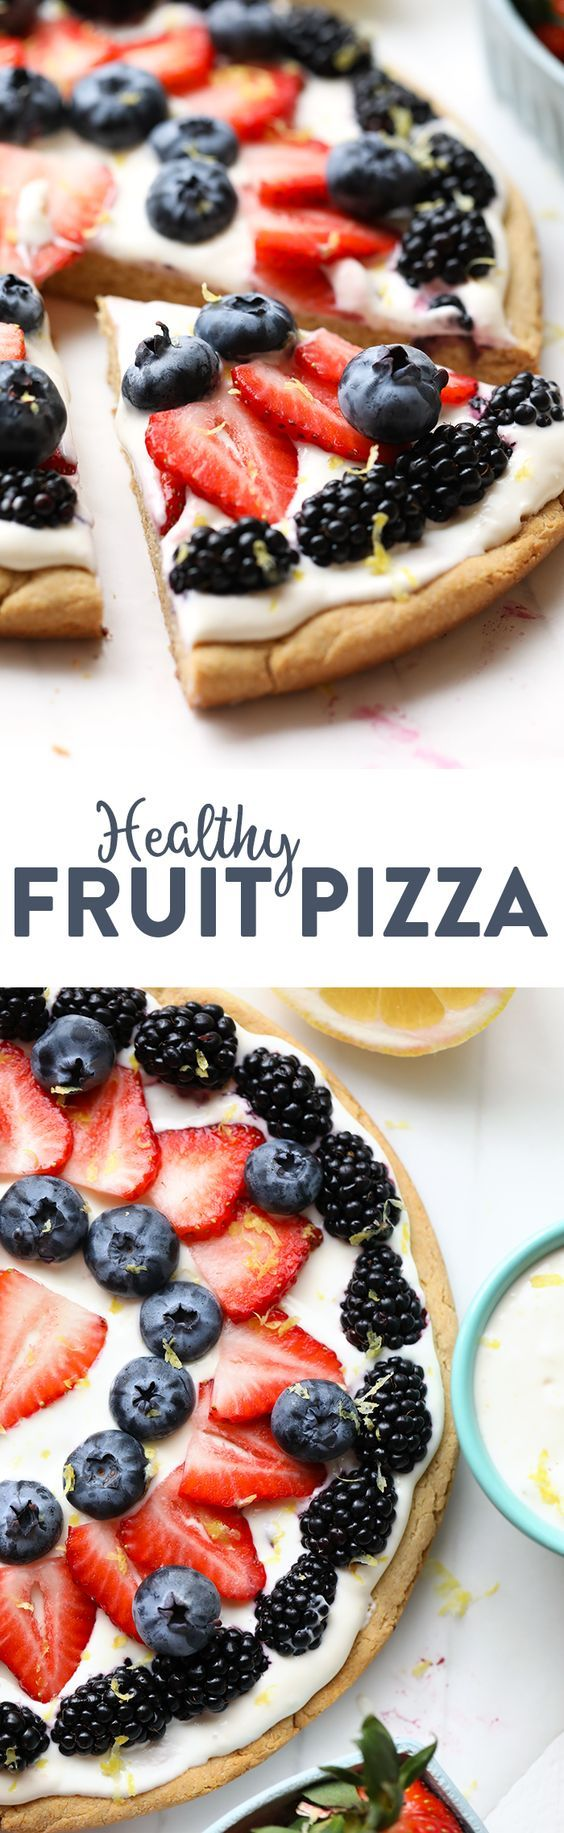 what fruits are healthy for weight loss fruit pizza crust healthy